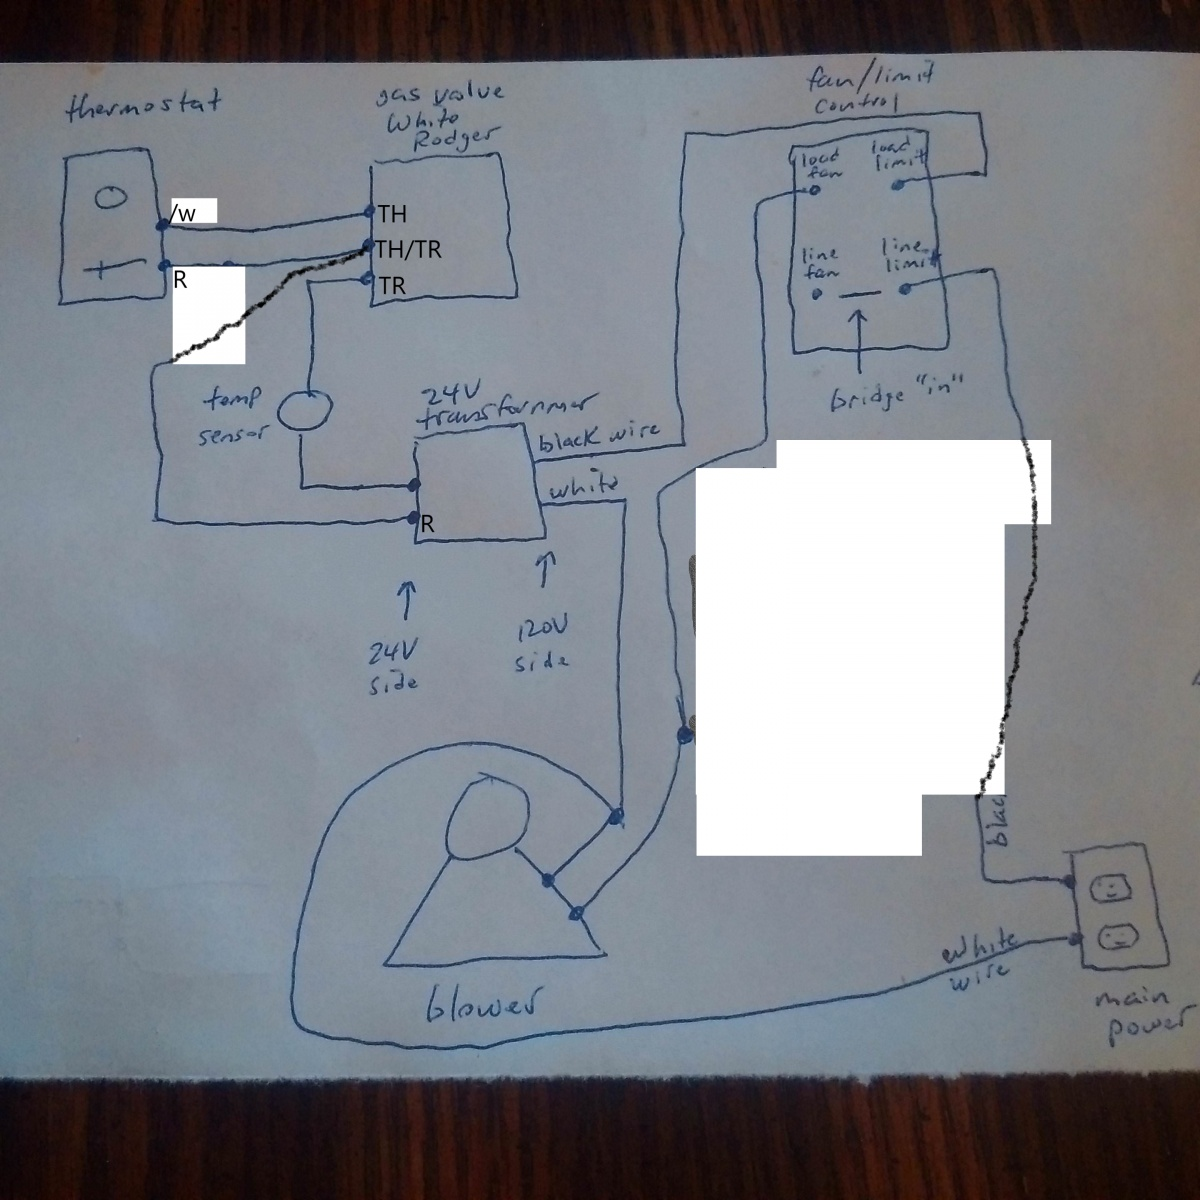 need help rewiring blower fan on gas furnace (weird) - hvac - page 2 - diy  chatroom home improvement forum  diy chatroom